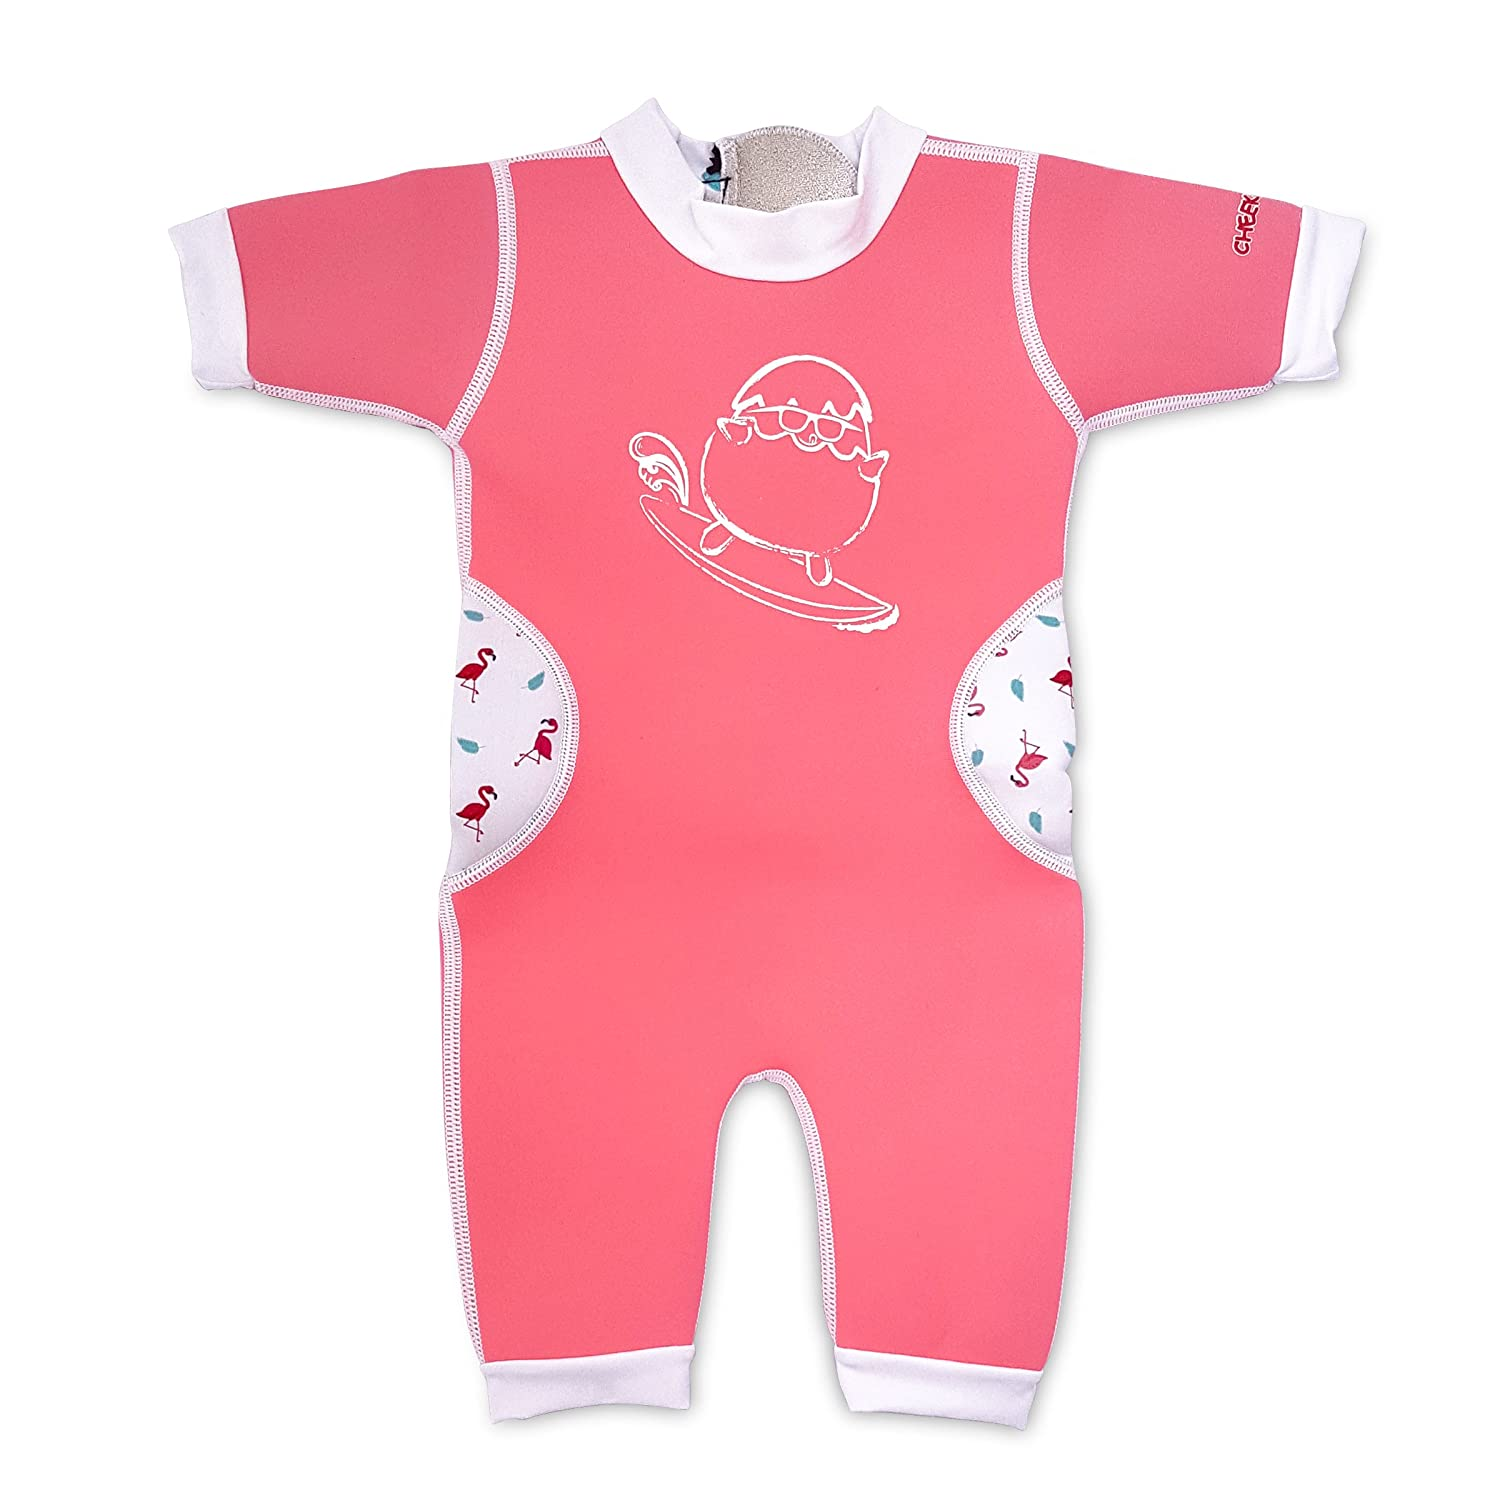 6-48 Months Cheekaaboo Warmiebabes Baby /& Kids One Piece Swimsuit for Boys and Girls